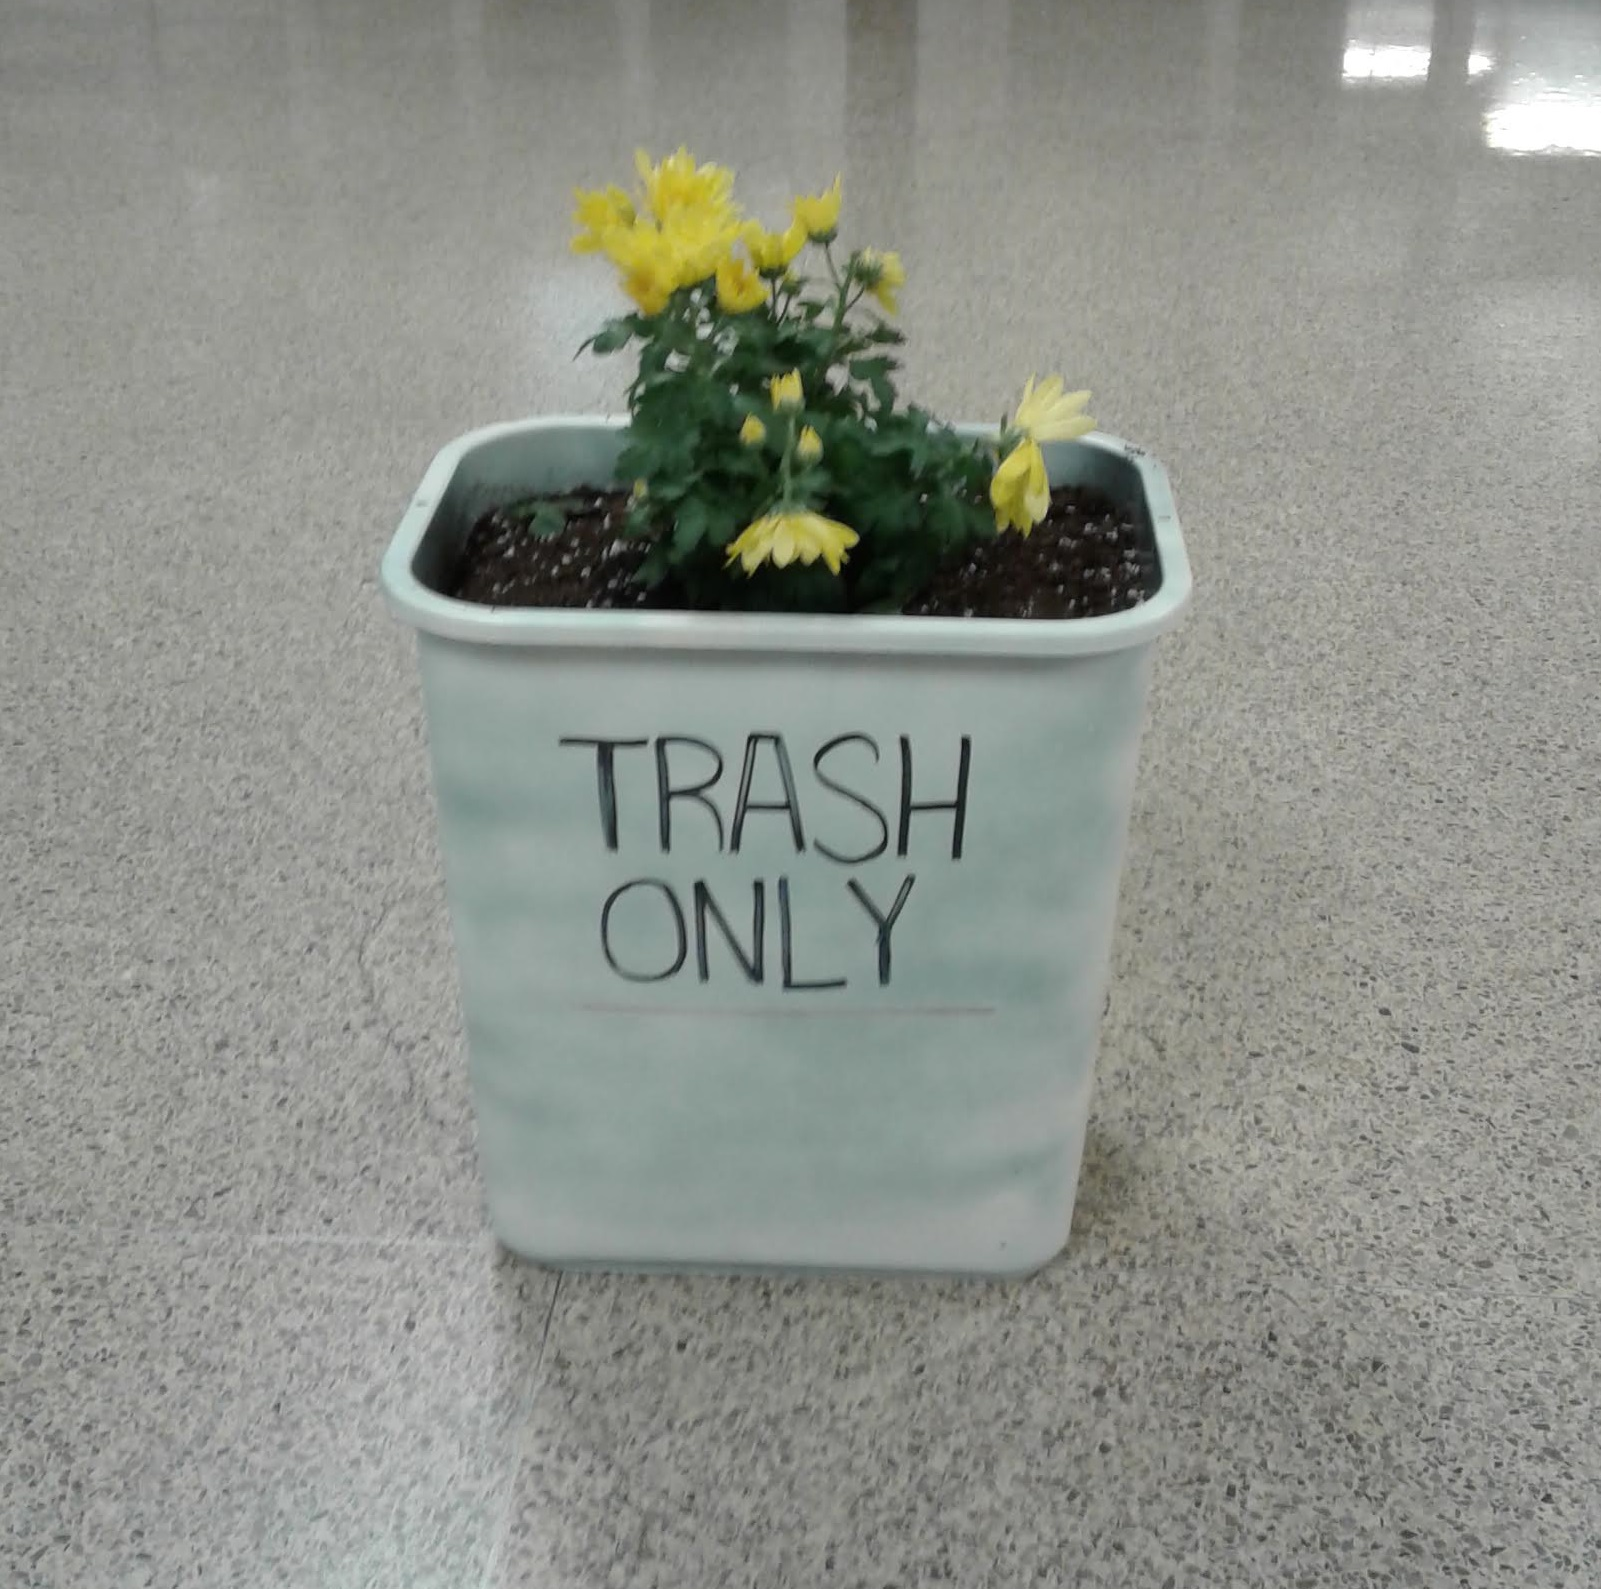 flower planted in wastebasket with sign trash only